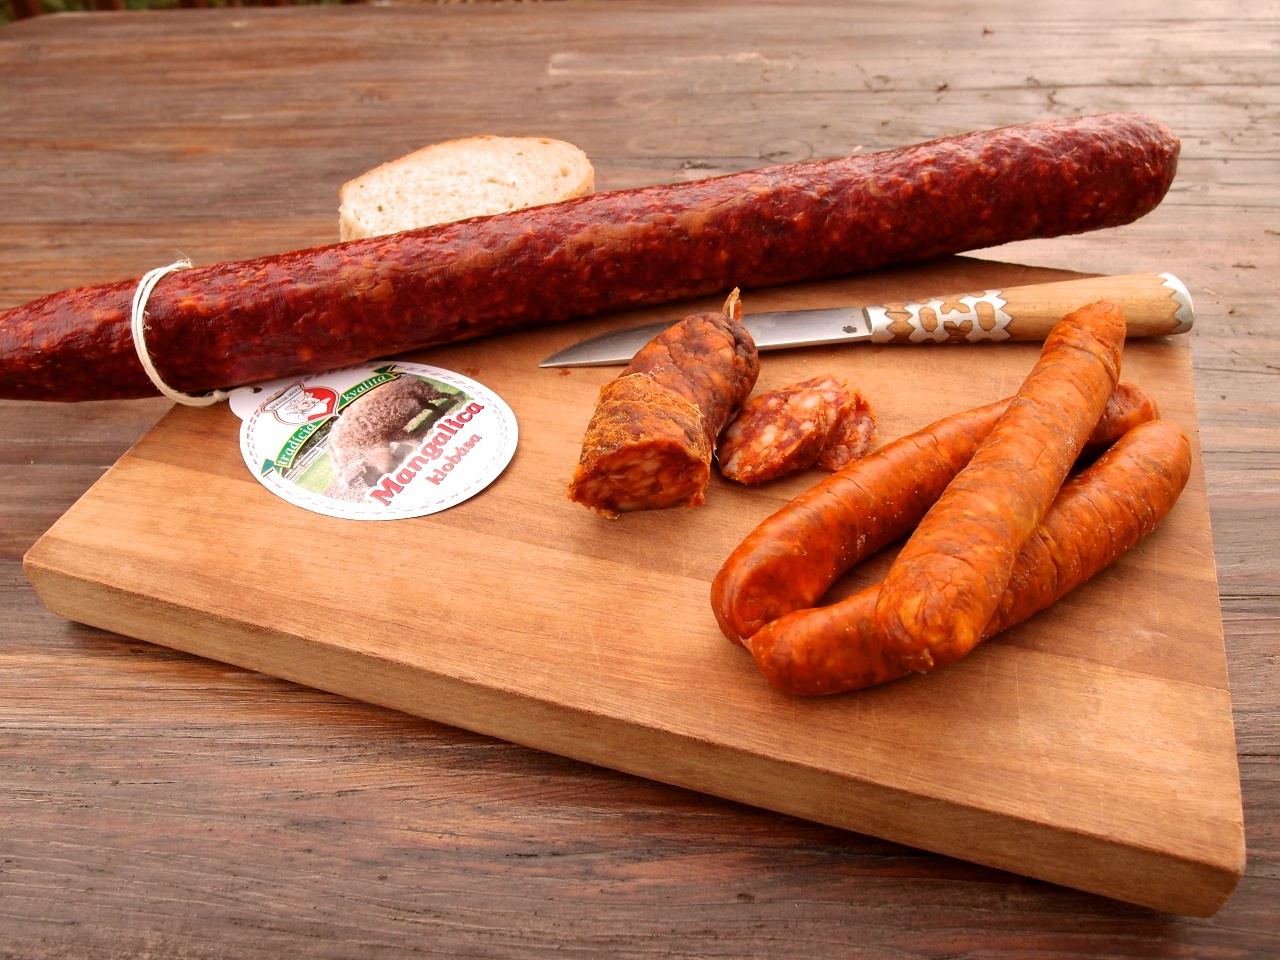 Meat specialties - sausages (photo by Viktor Klimo)